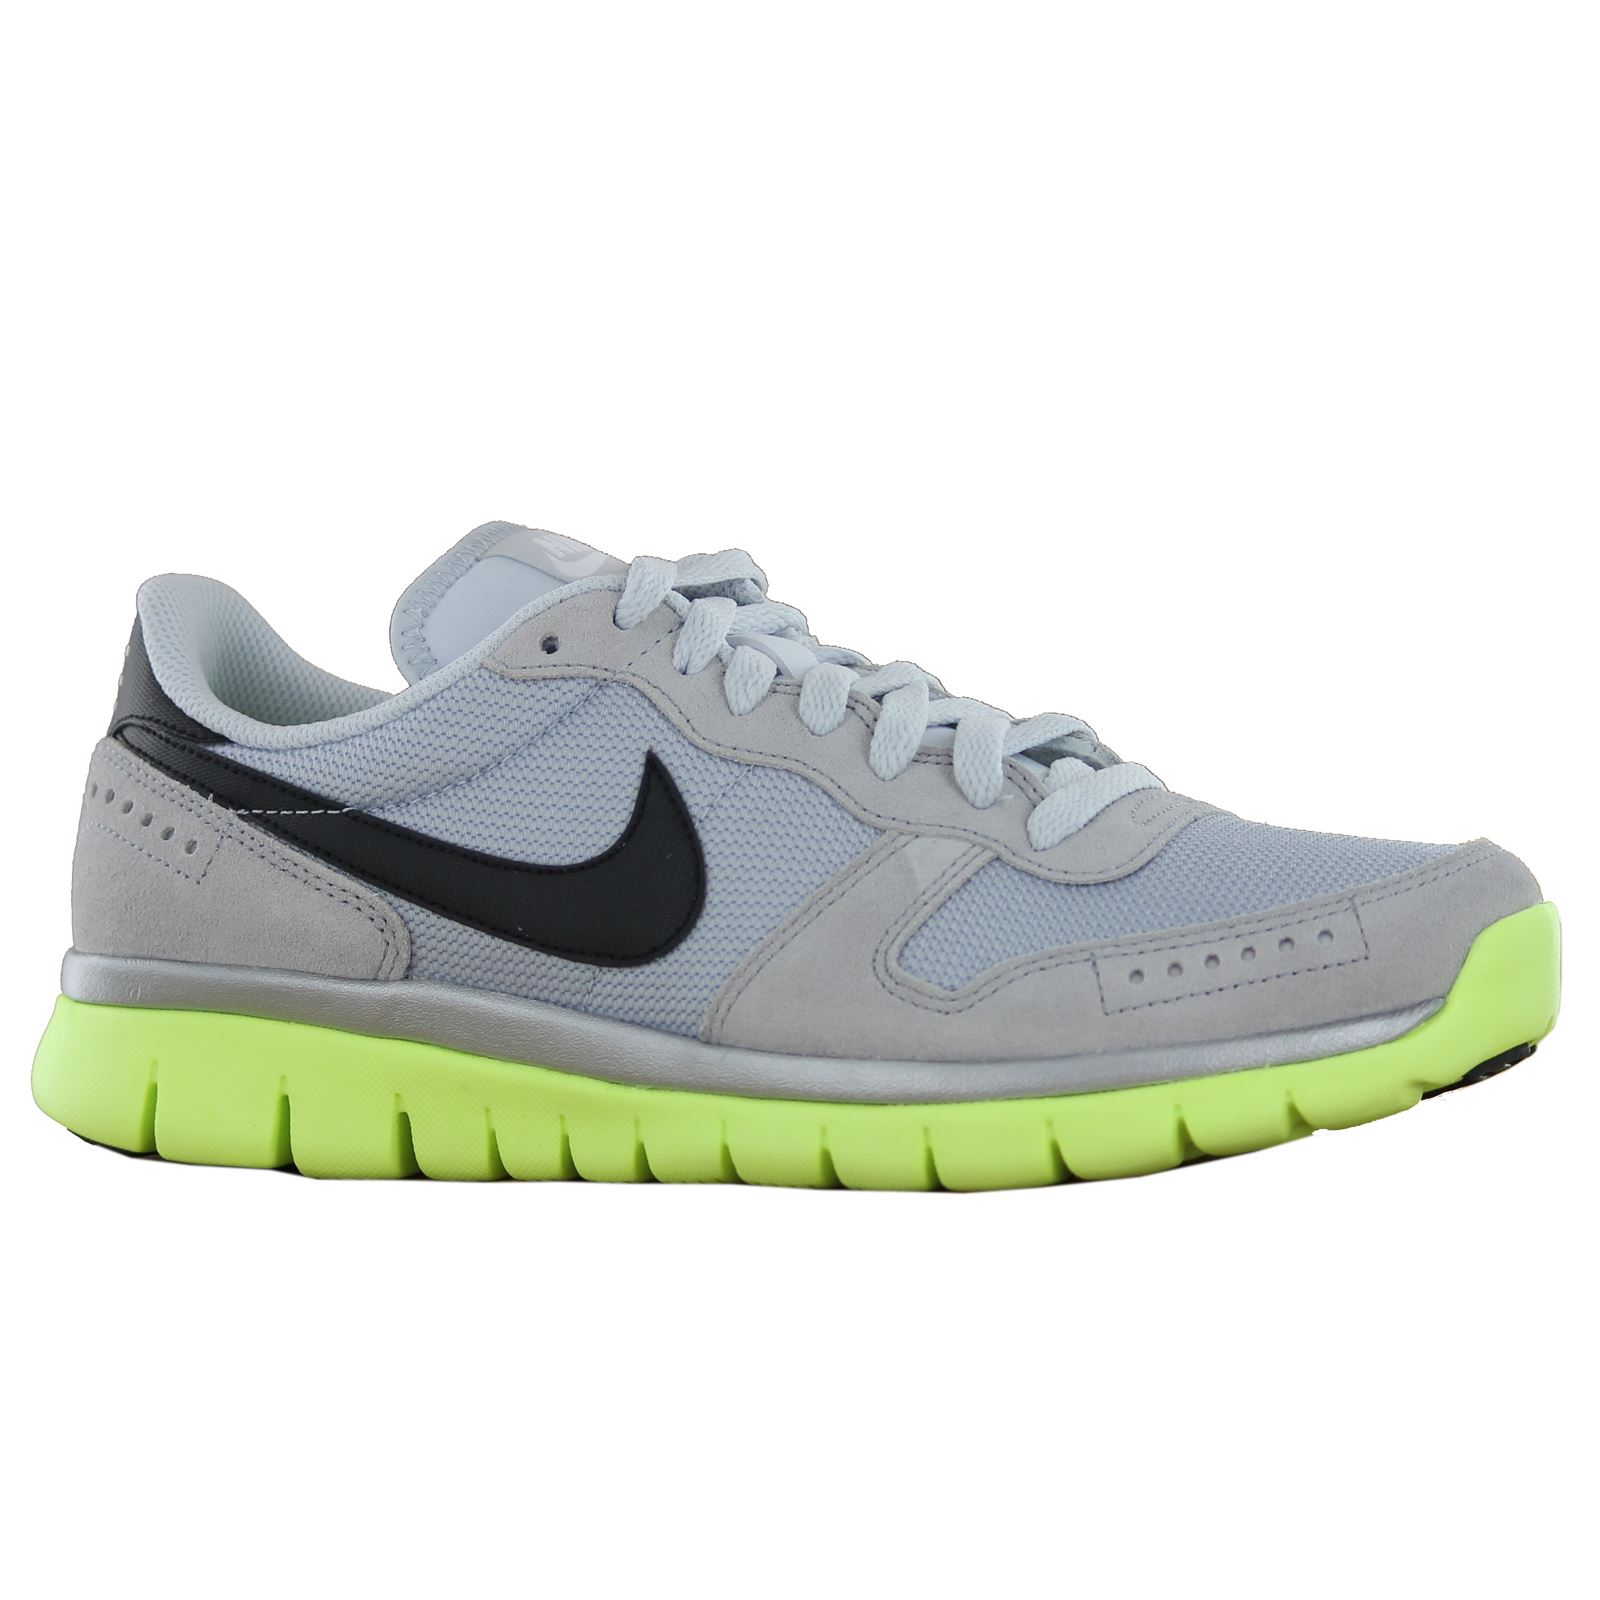 Nike Air Brs  Running Shoes